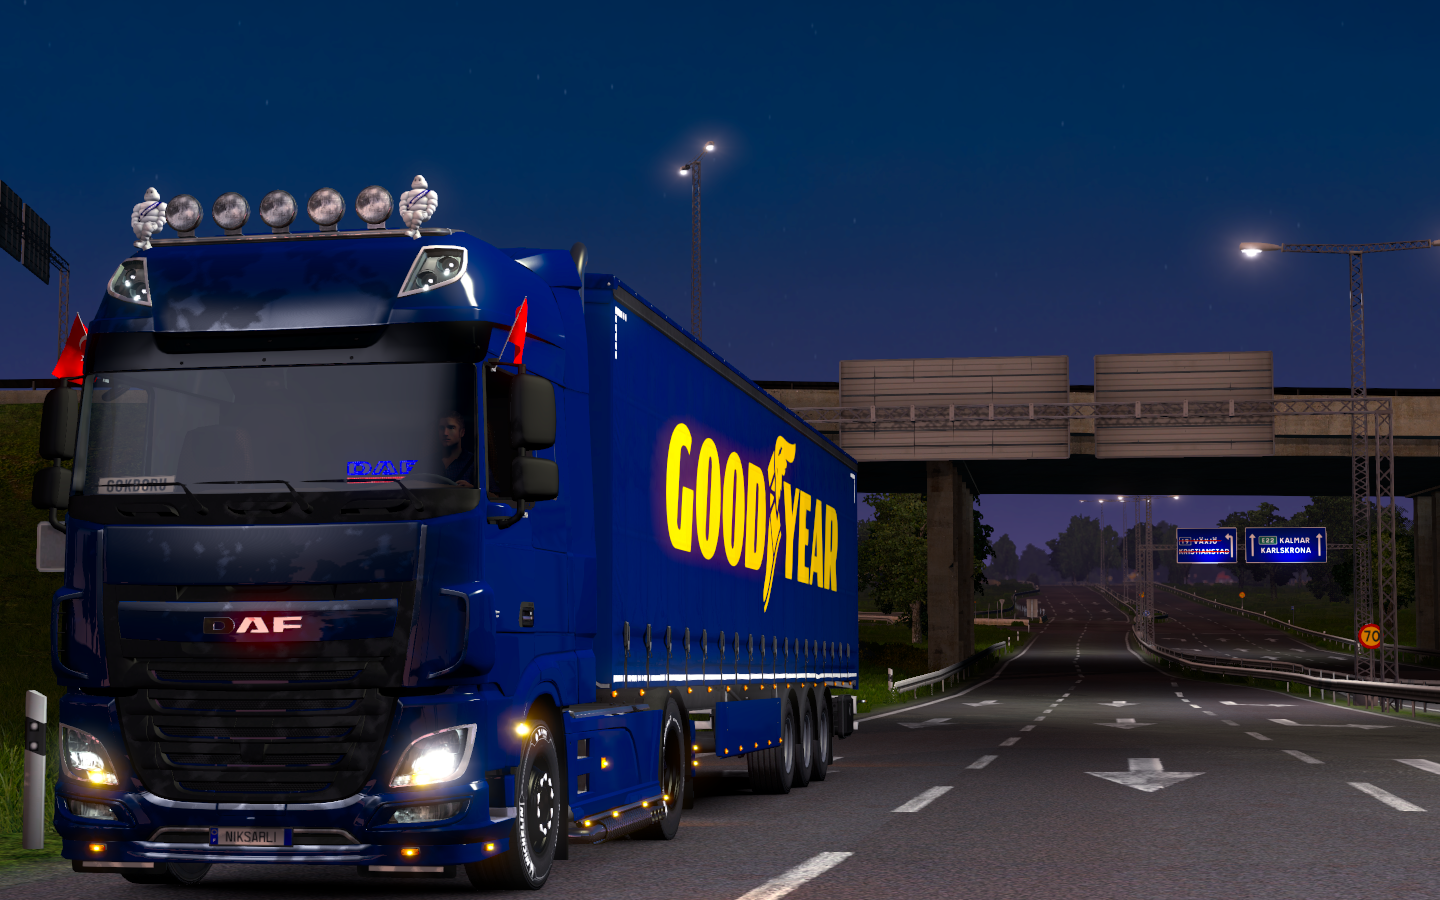 ets2_20190801_181059_00.png